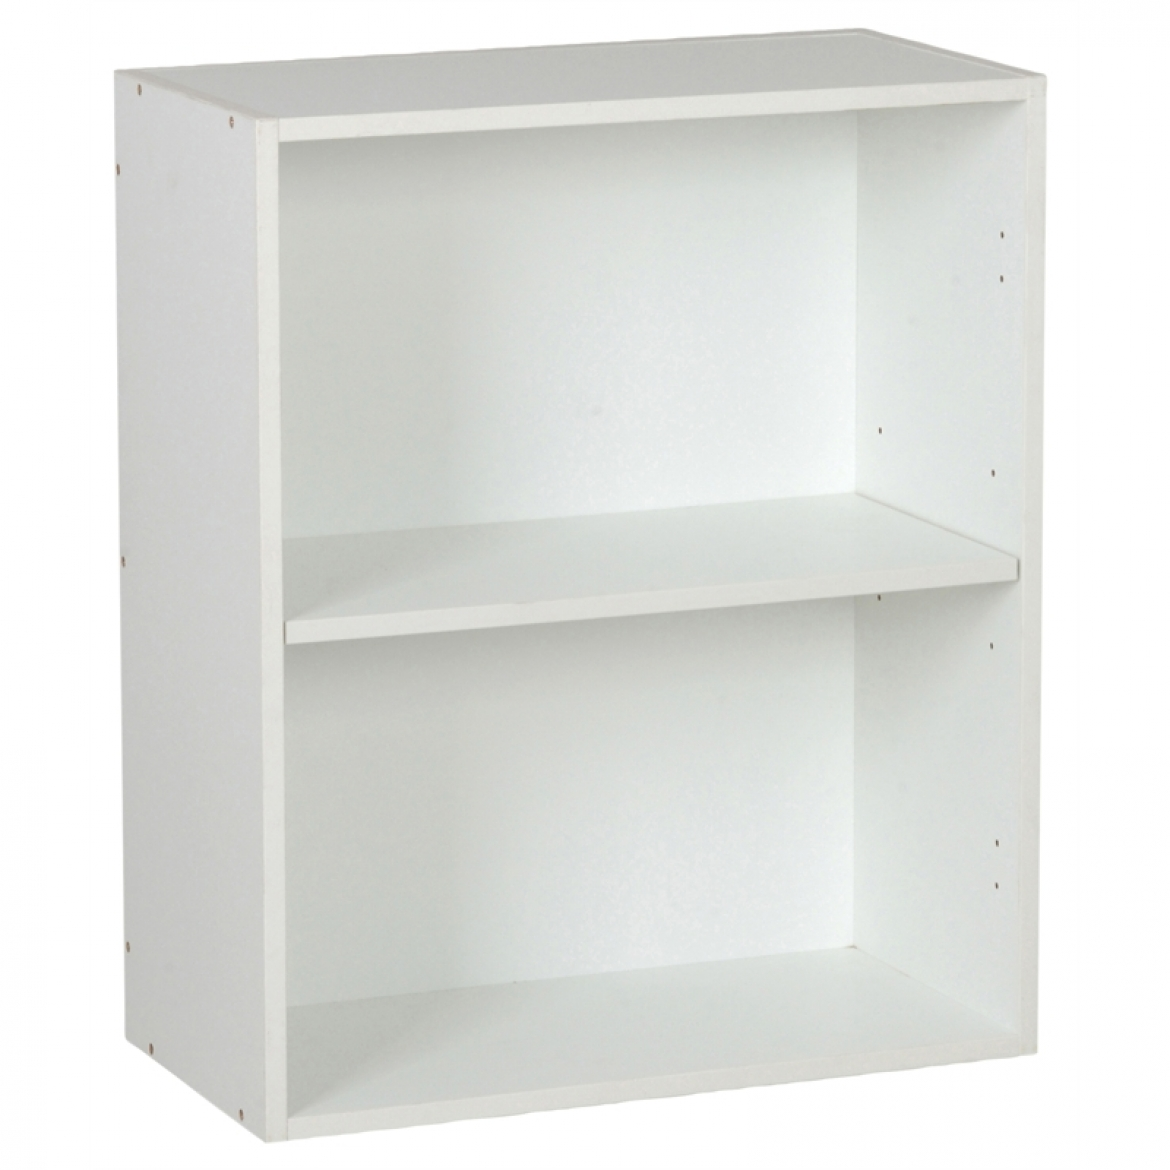 450 mm wall hung cabinet [1 door]